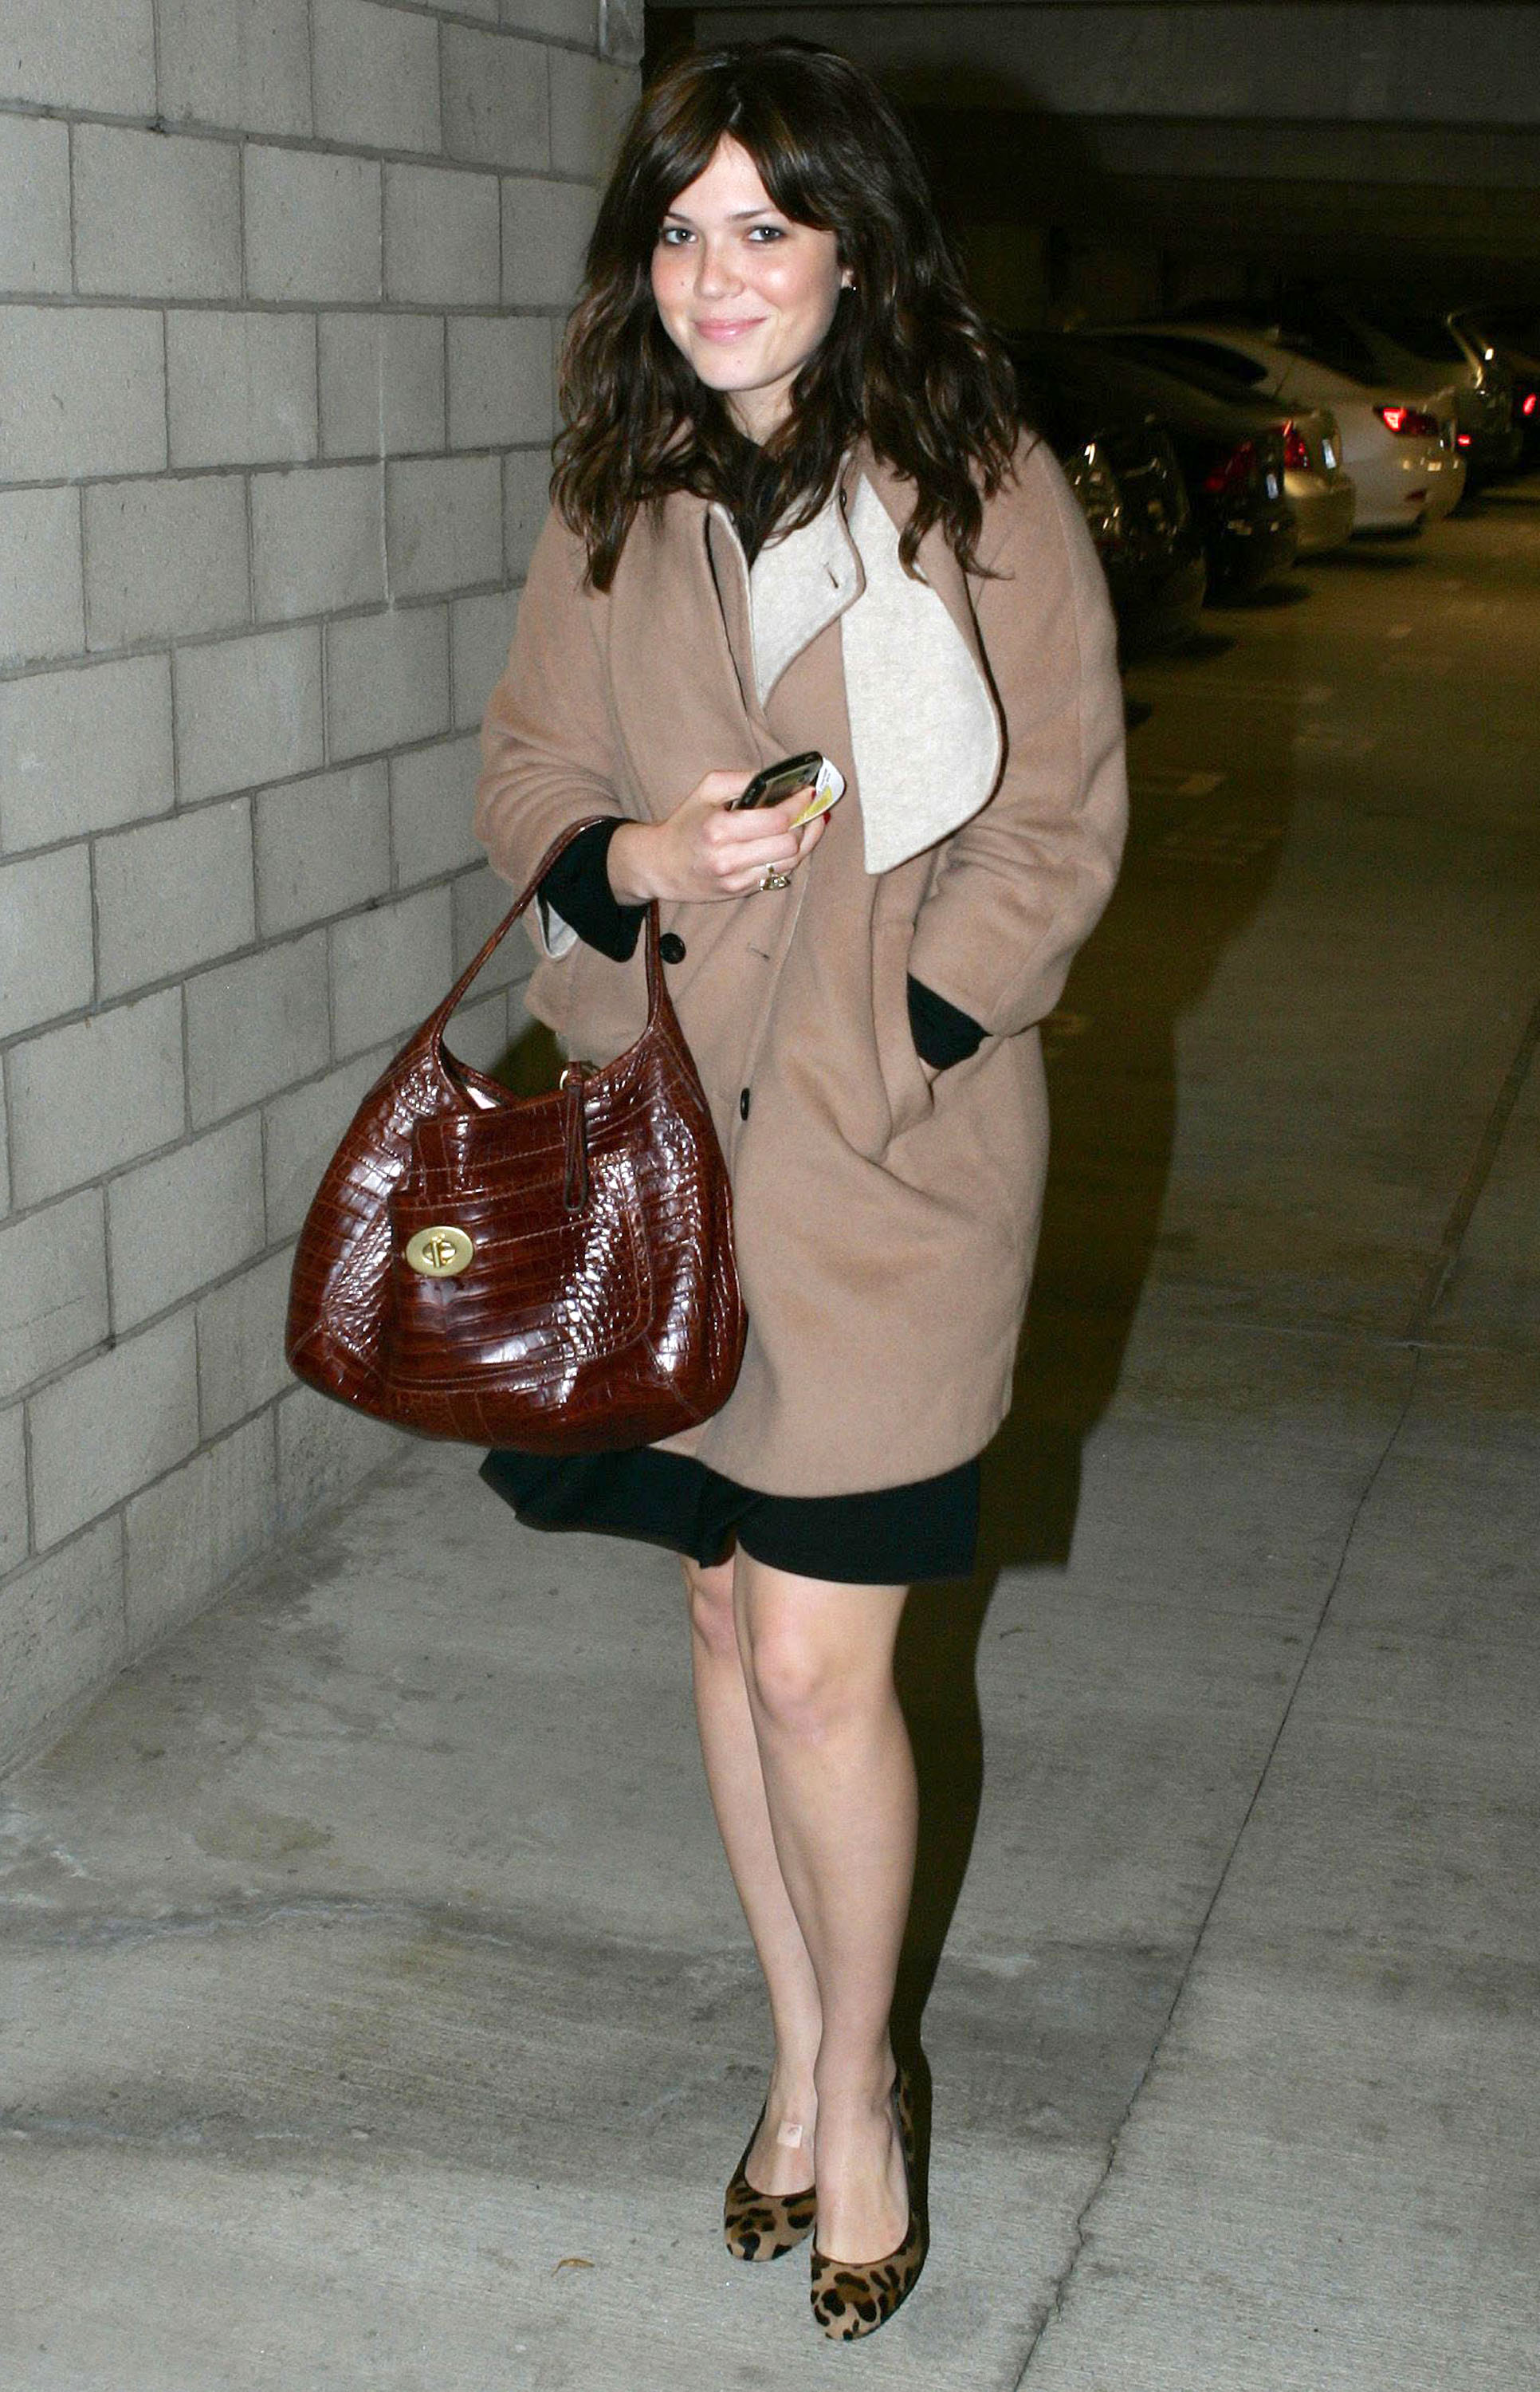 67666_celeb-city.eu_Mandy_Moore_out_and_about_in_West_Hollywood_10.12.2007_14_122_94lo.jpg